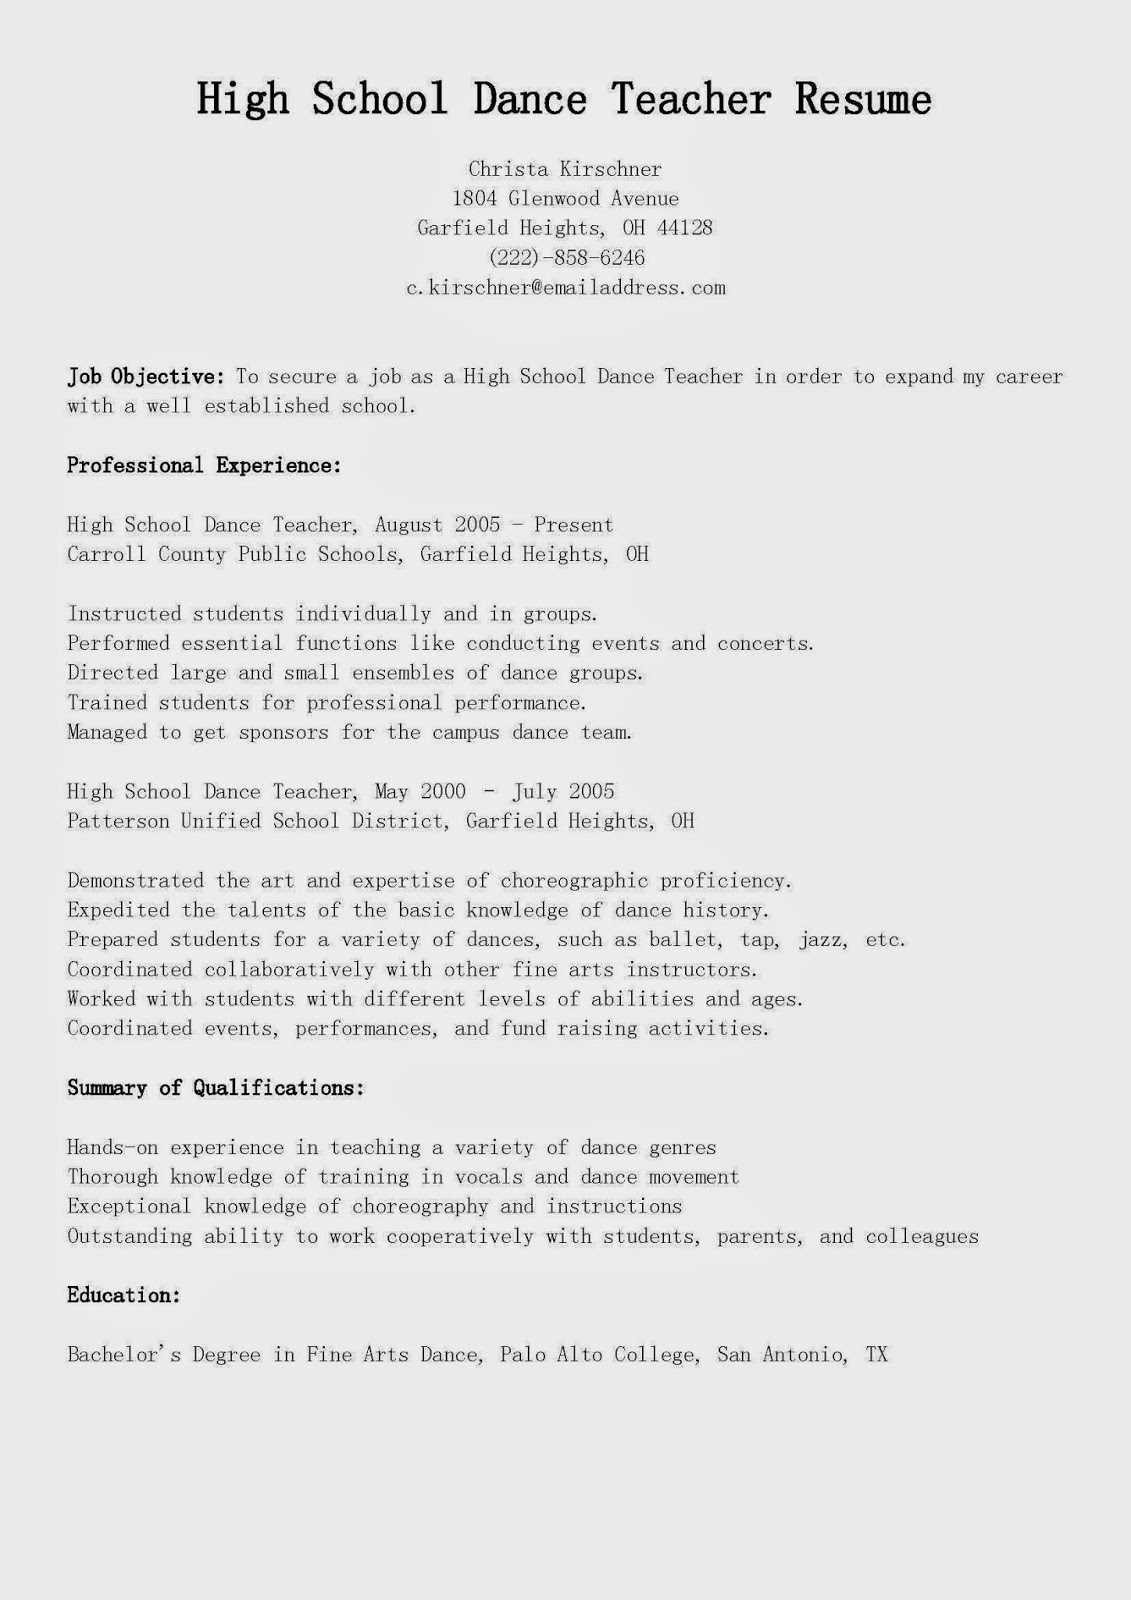 school teacher resume samples school teacher resume sample india – Biodata for Teaching Job